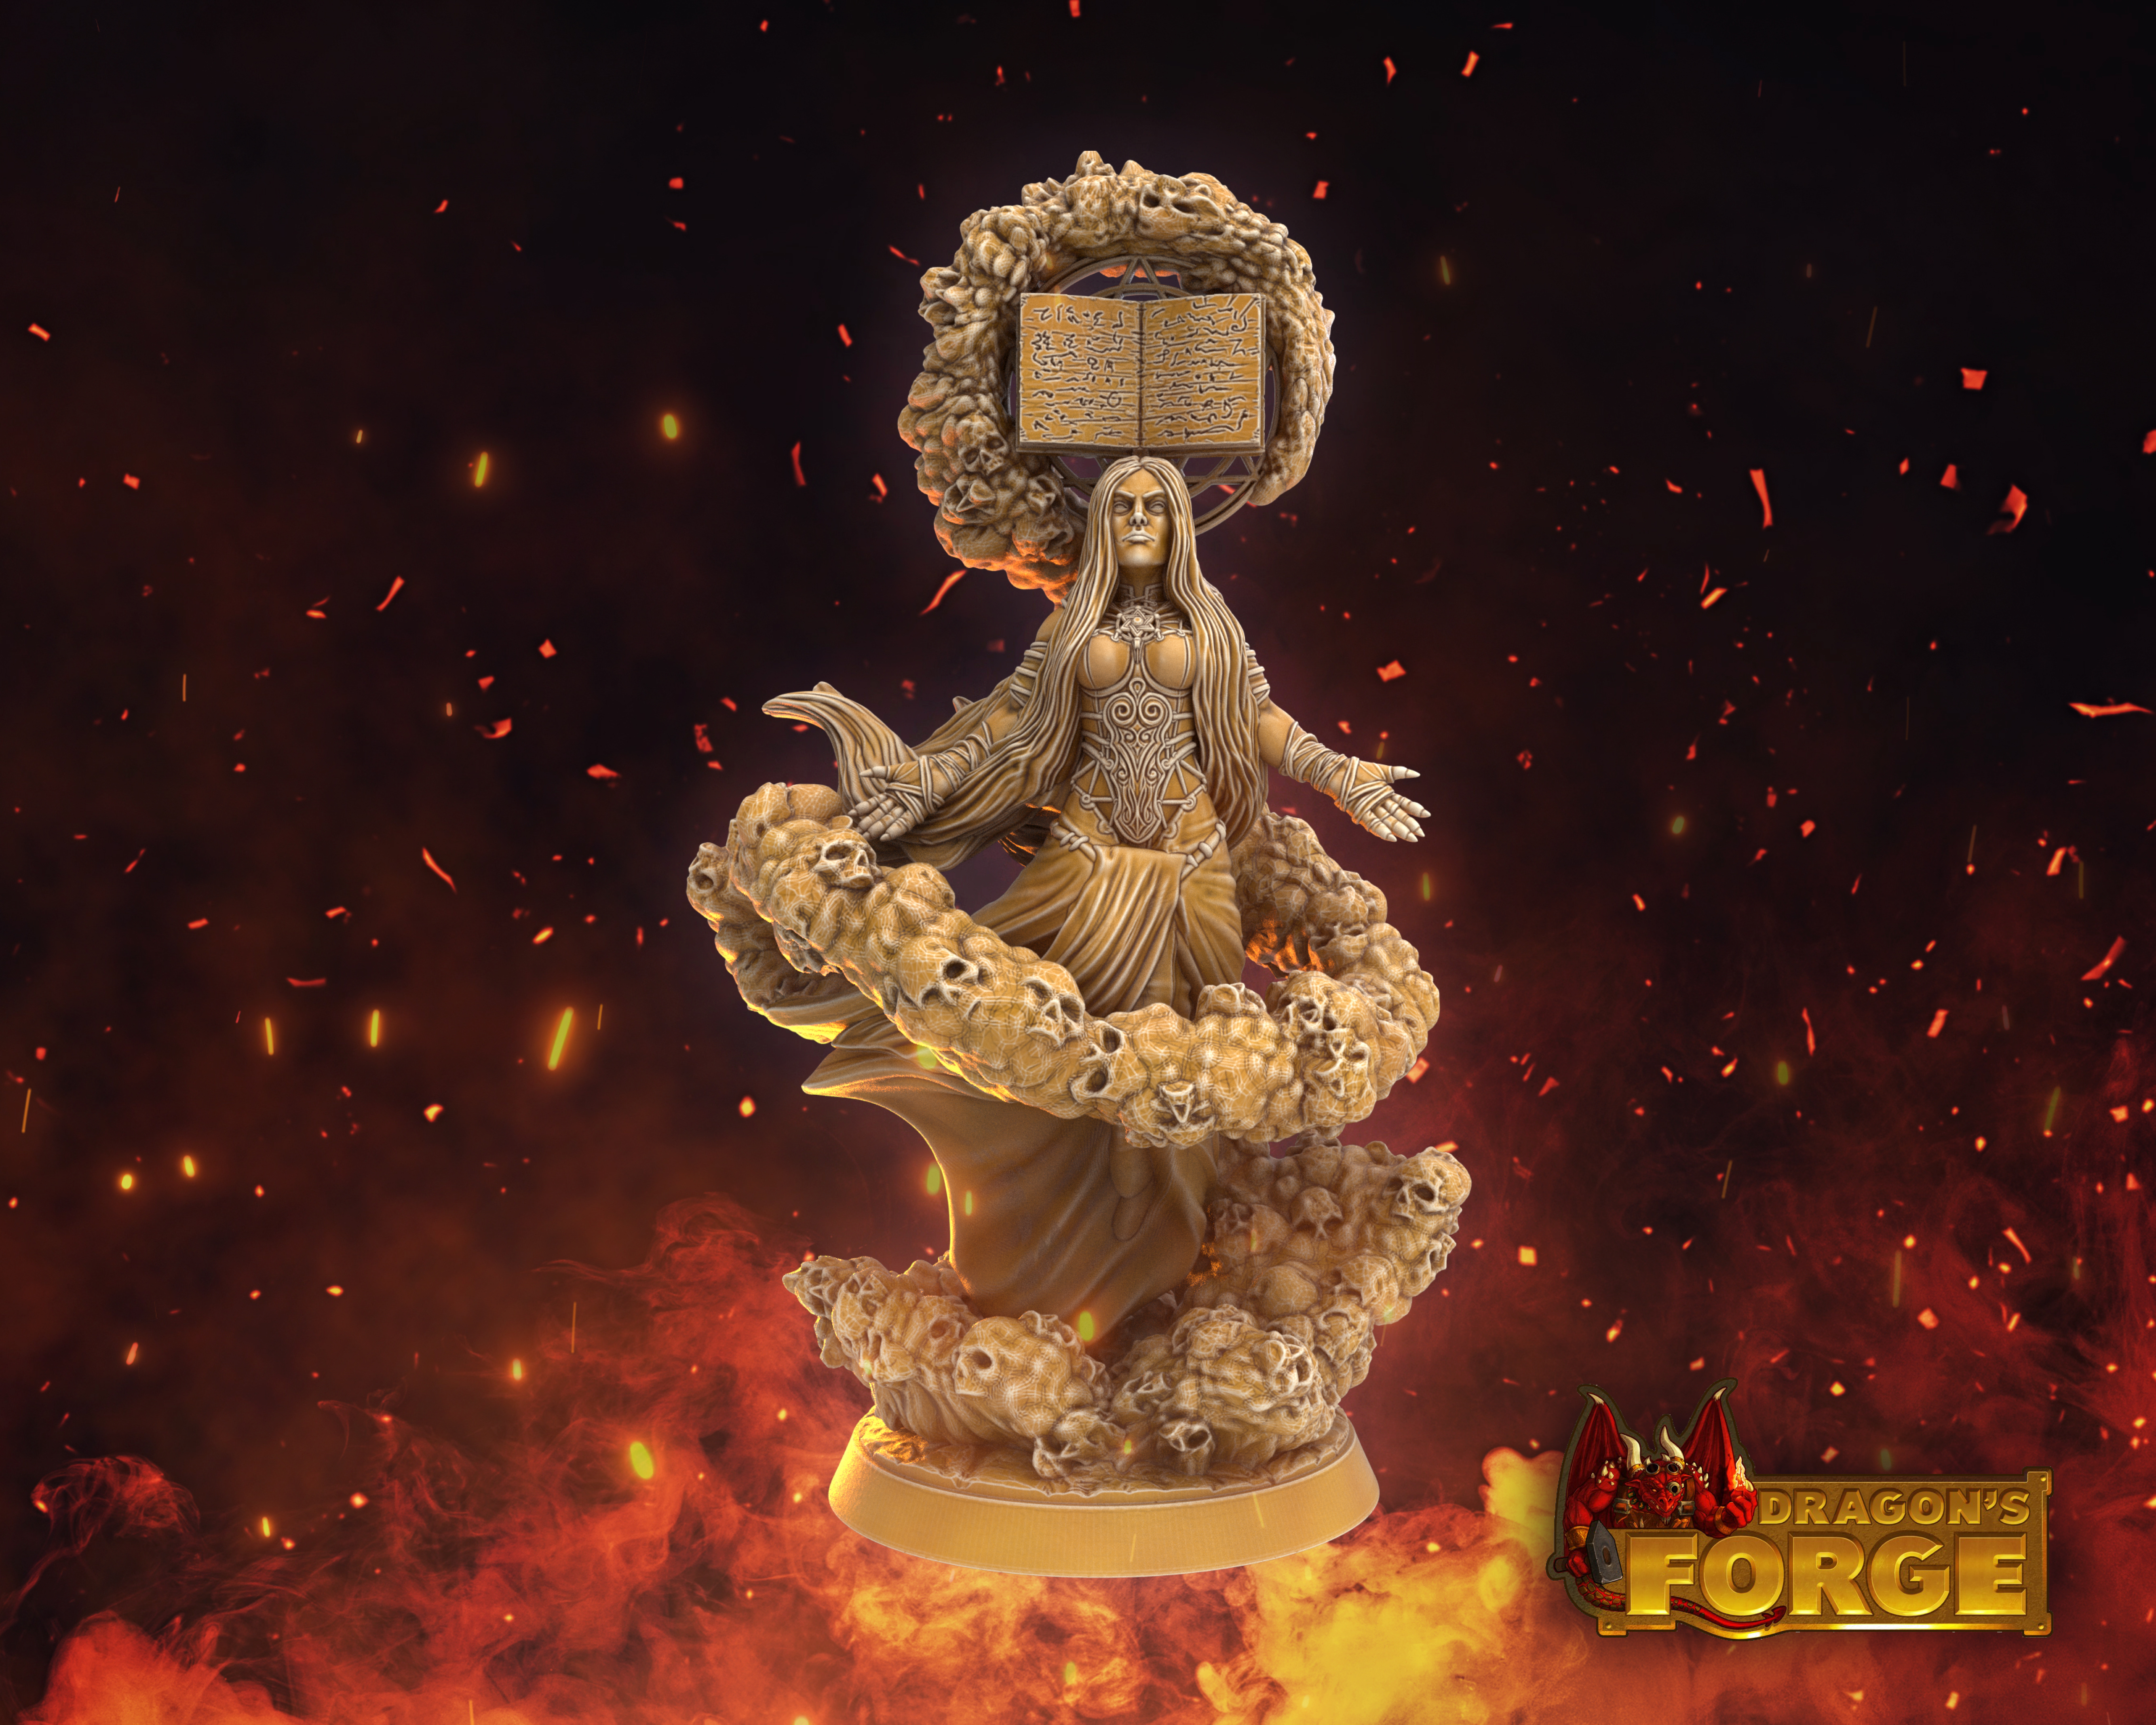 Dragons Forge Preview #2